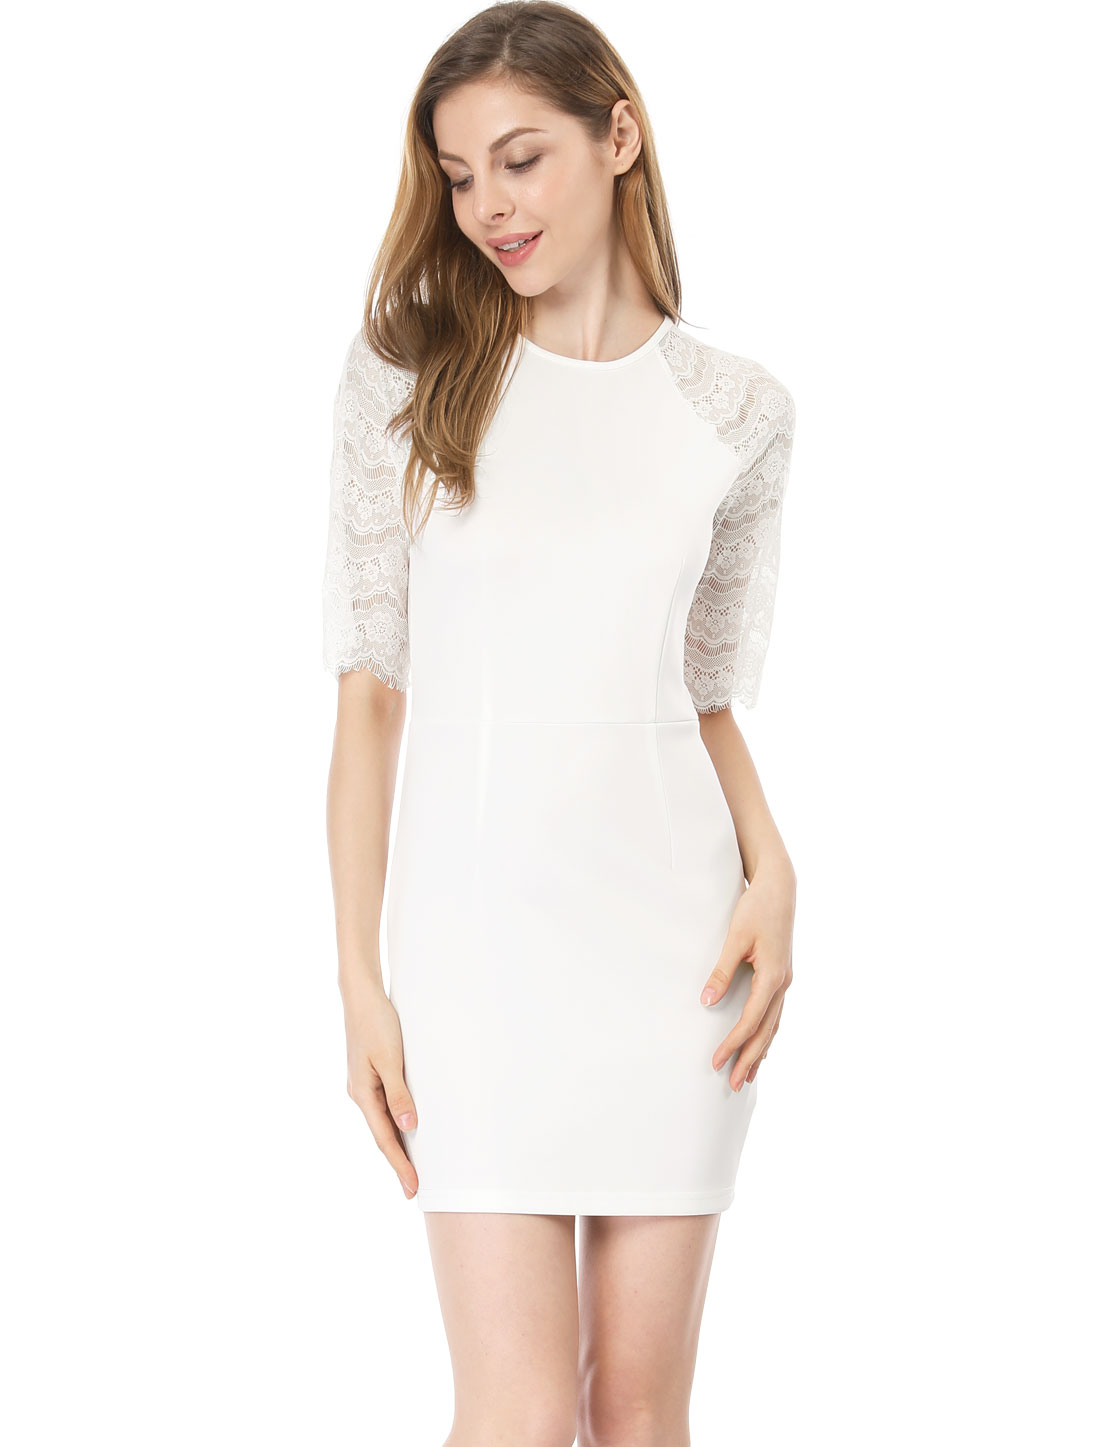 Lady Round Neck Elbow Sleeves Semi Sheer Lace Bodycon Dress White L